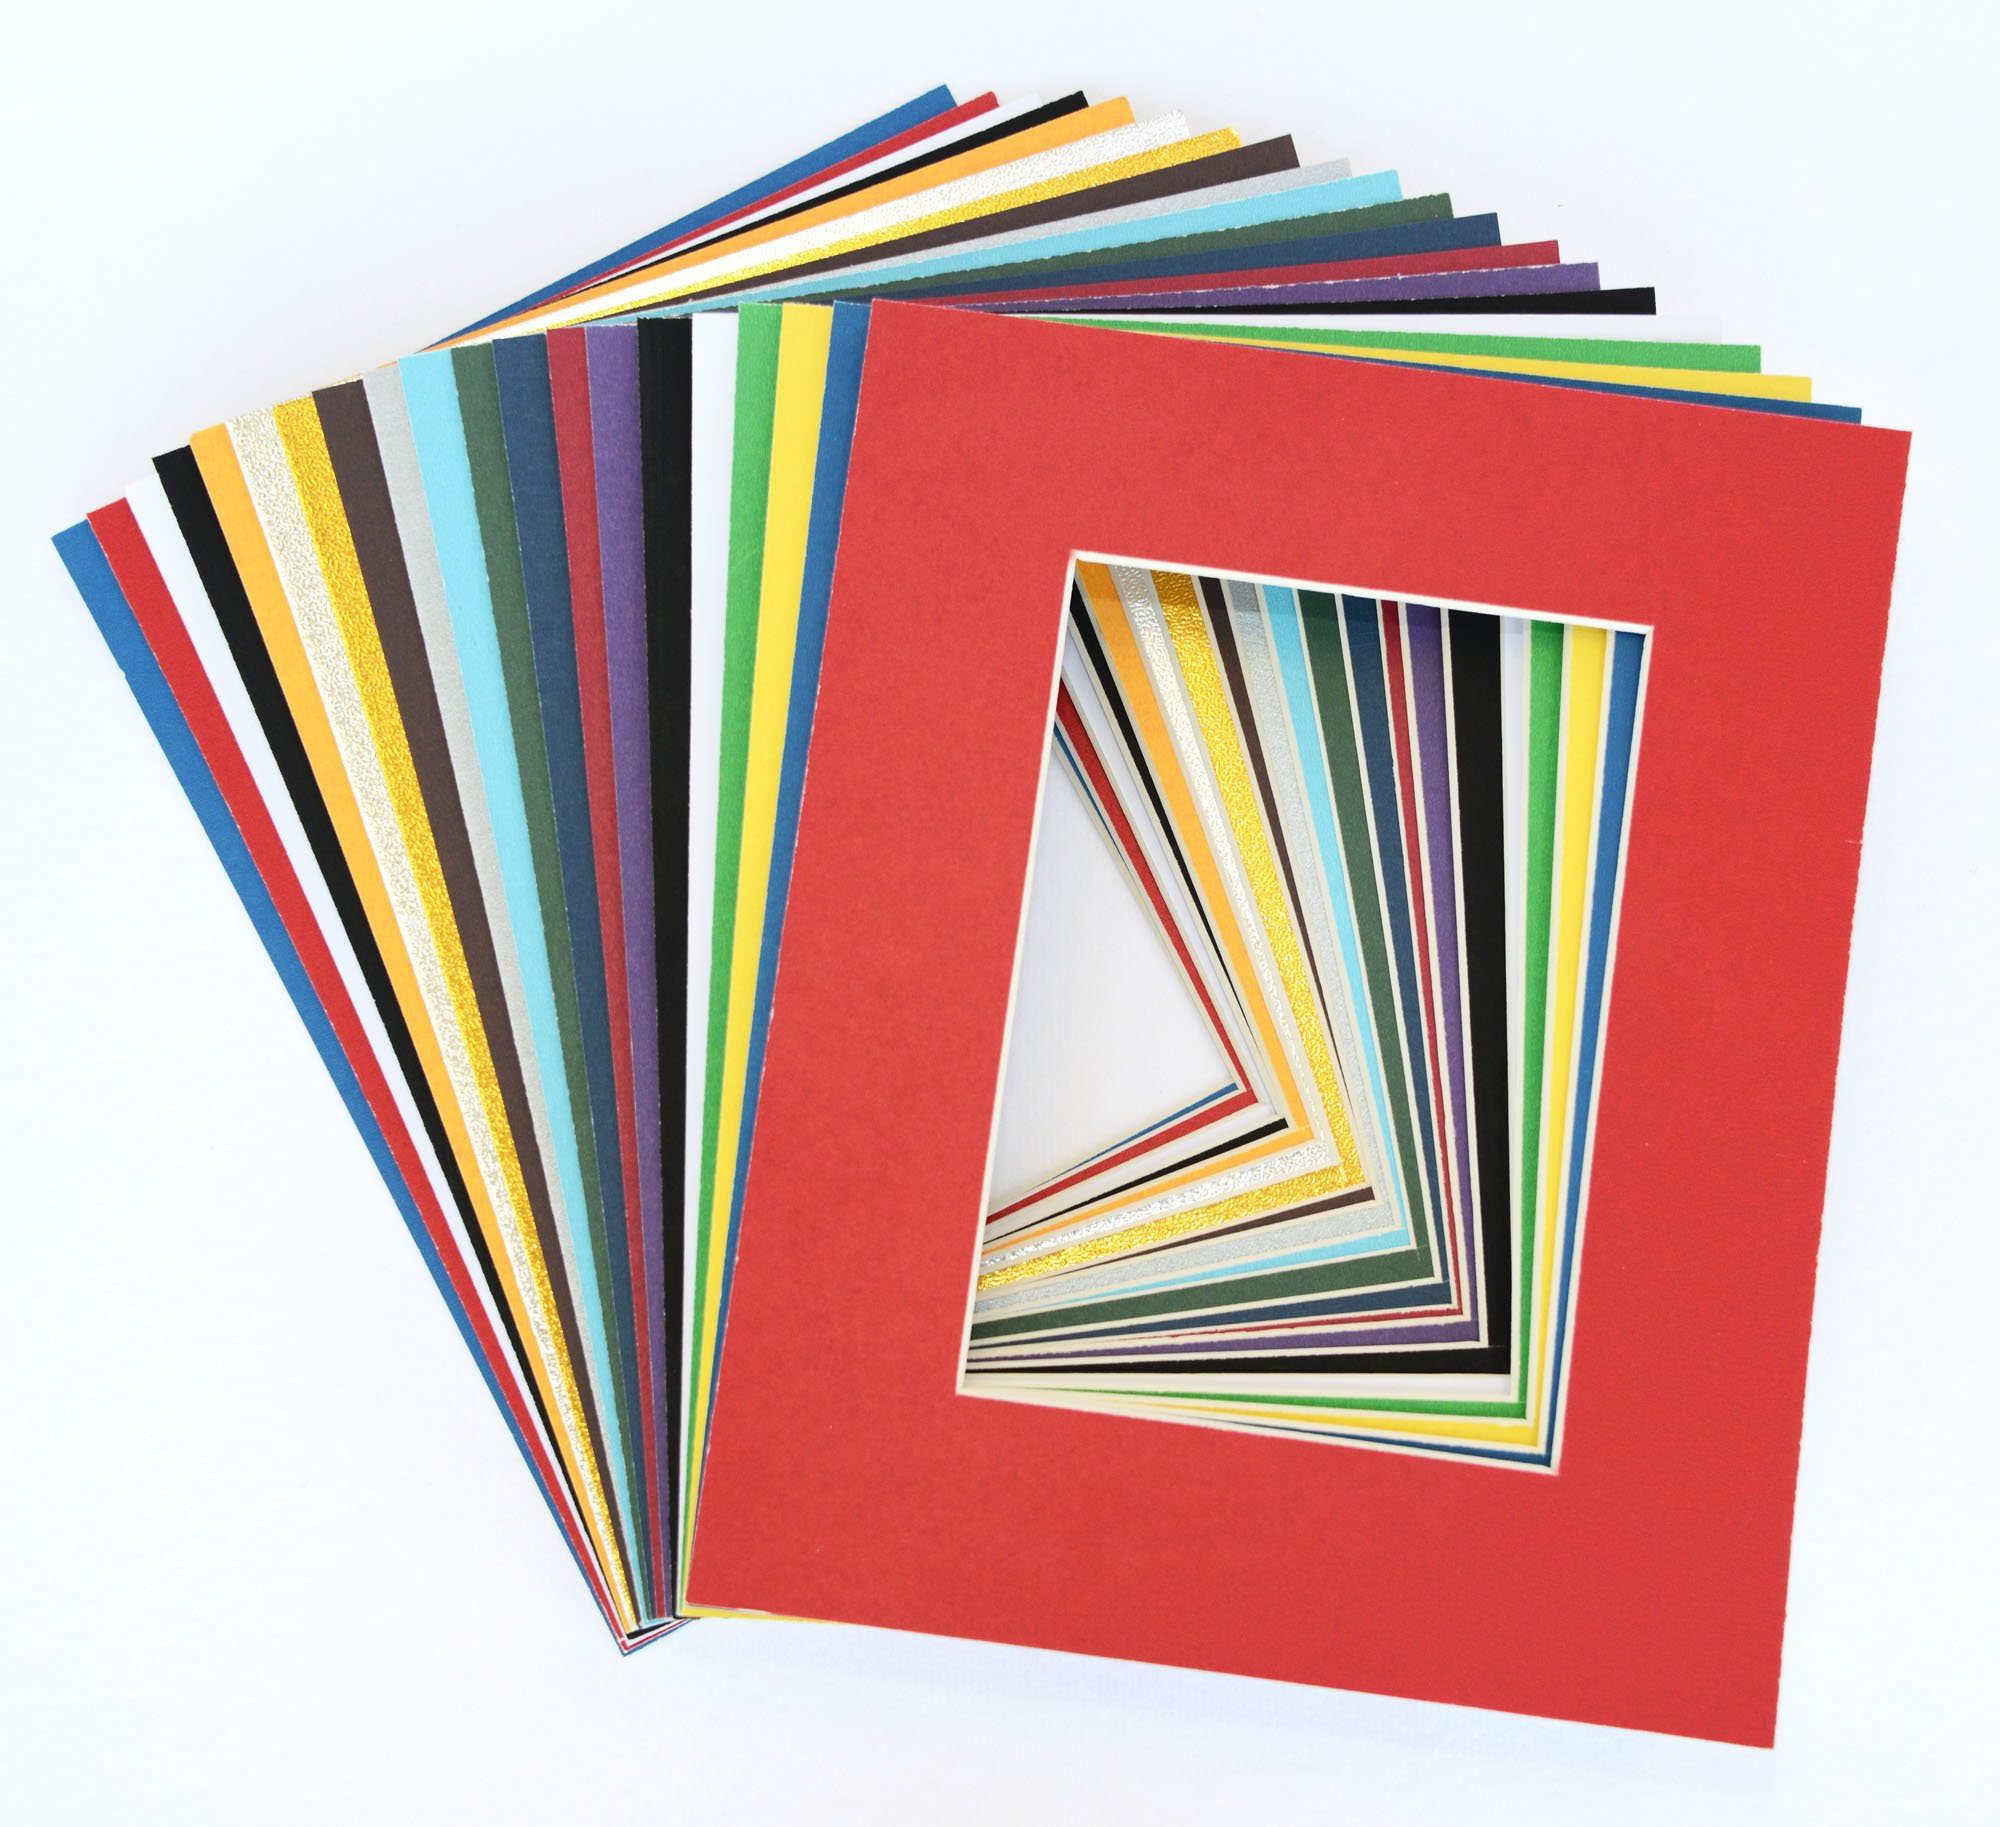 Pack of 20 MIXED COLORS 16x20 Picture Mats Matting with White Core Bevel Cut for 11x14 Pictures by Unknown